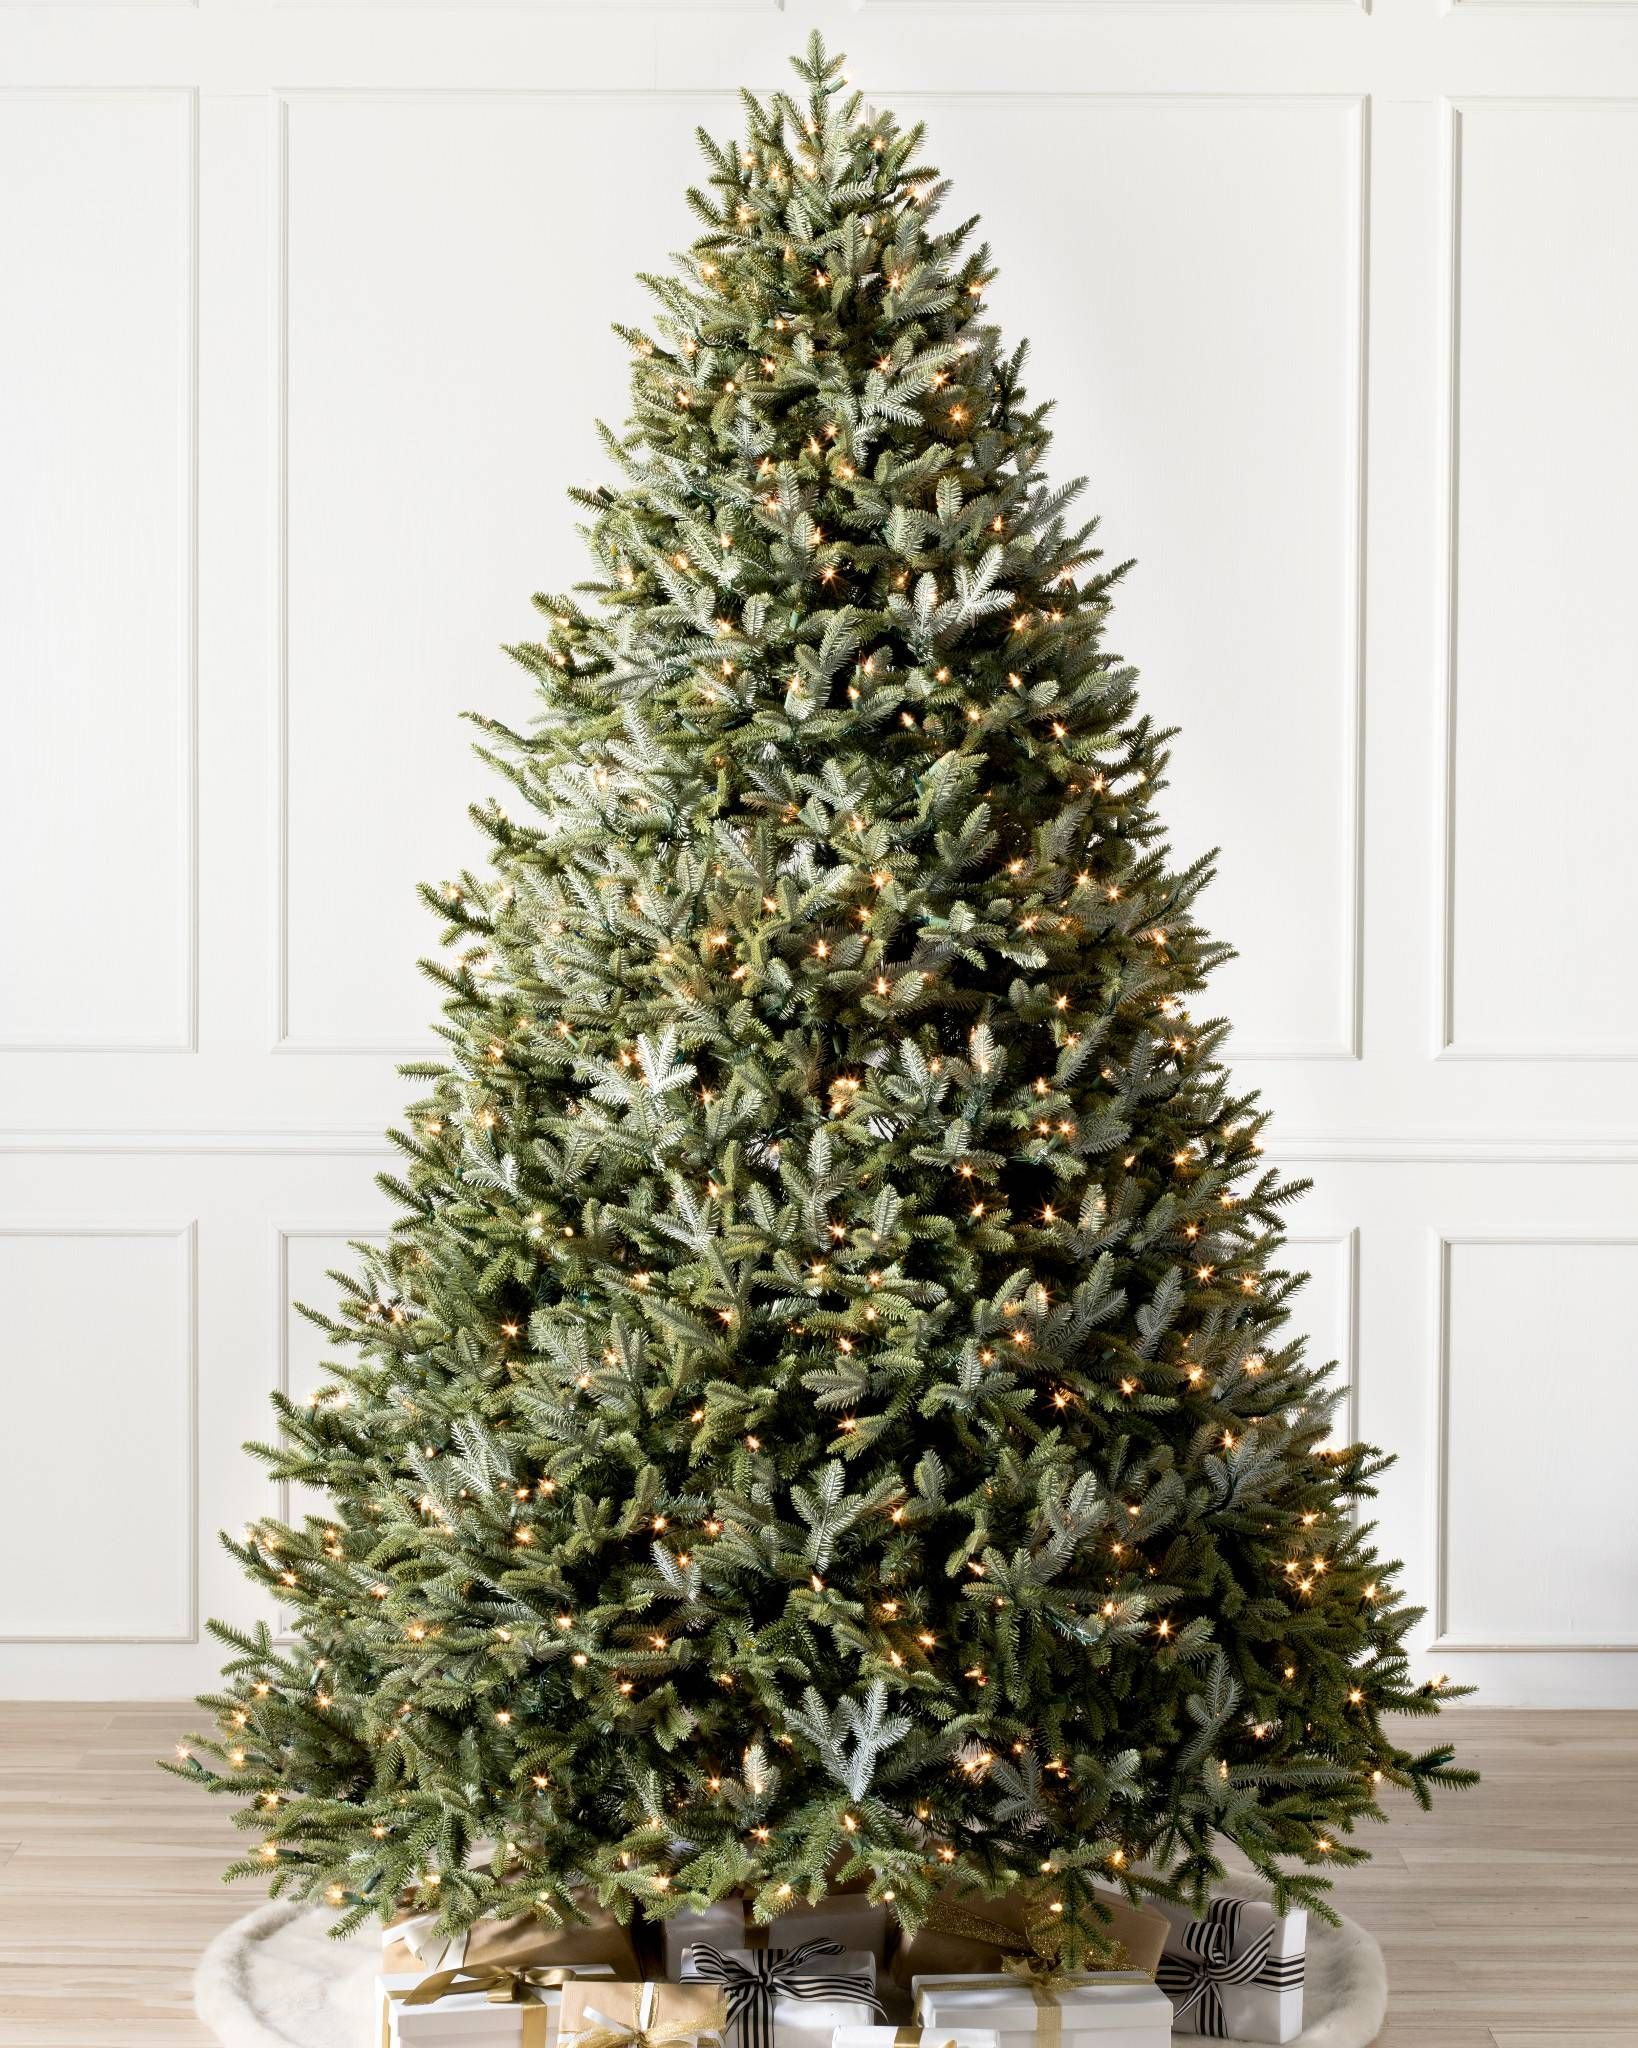 47a066eb560 BH Fraser Fir™ with Candlelight™ LED. Now available with our ...